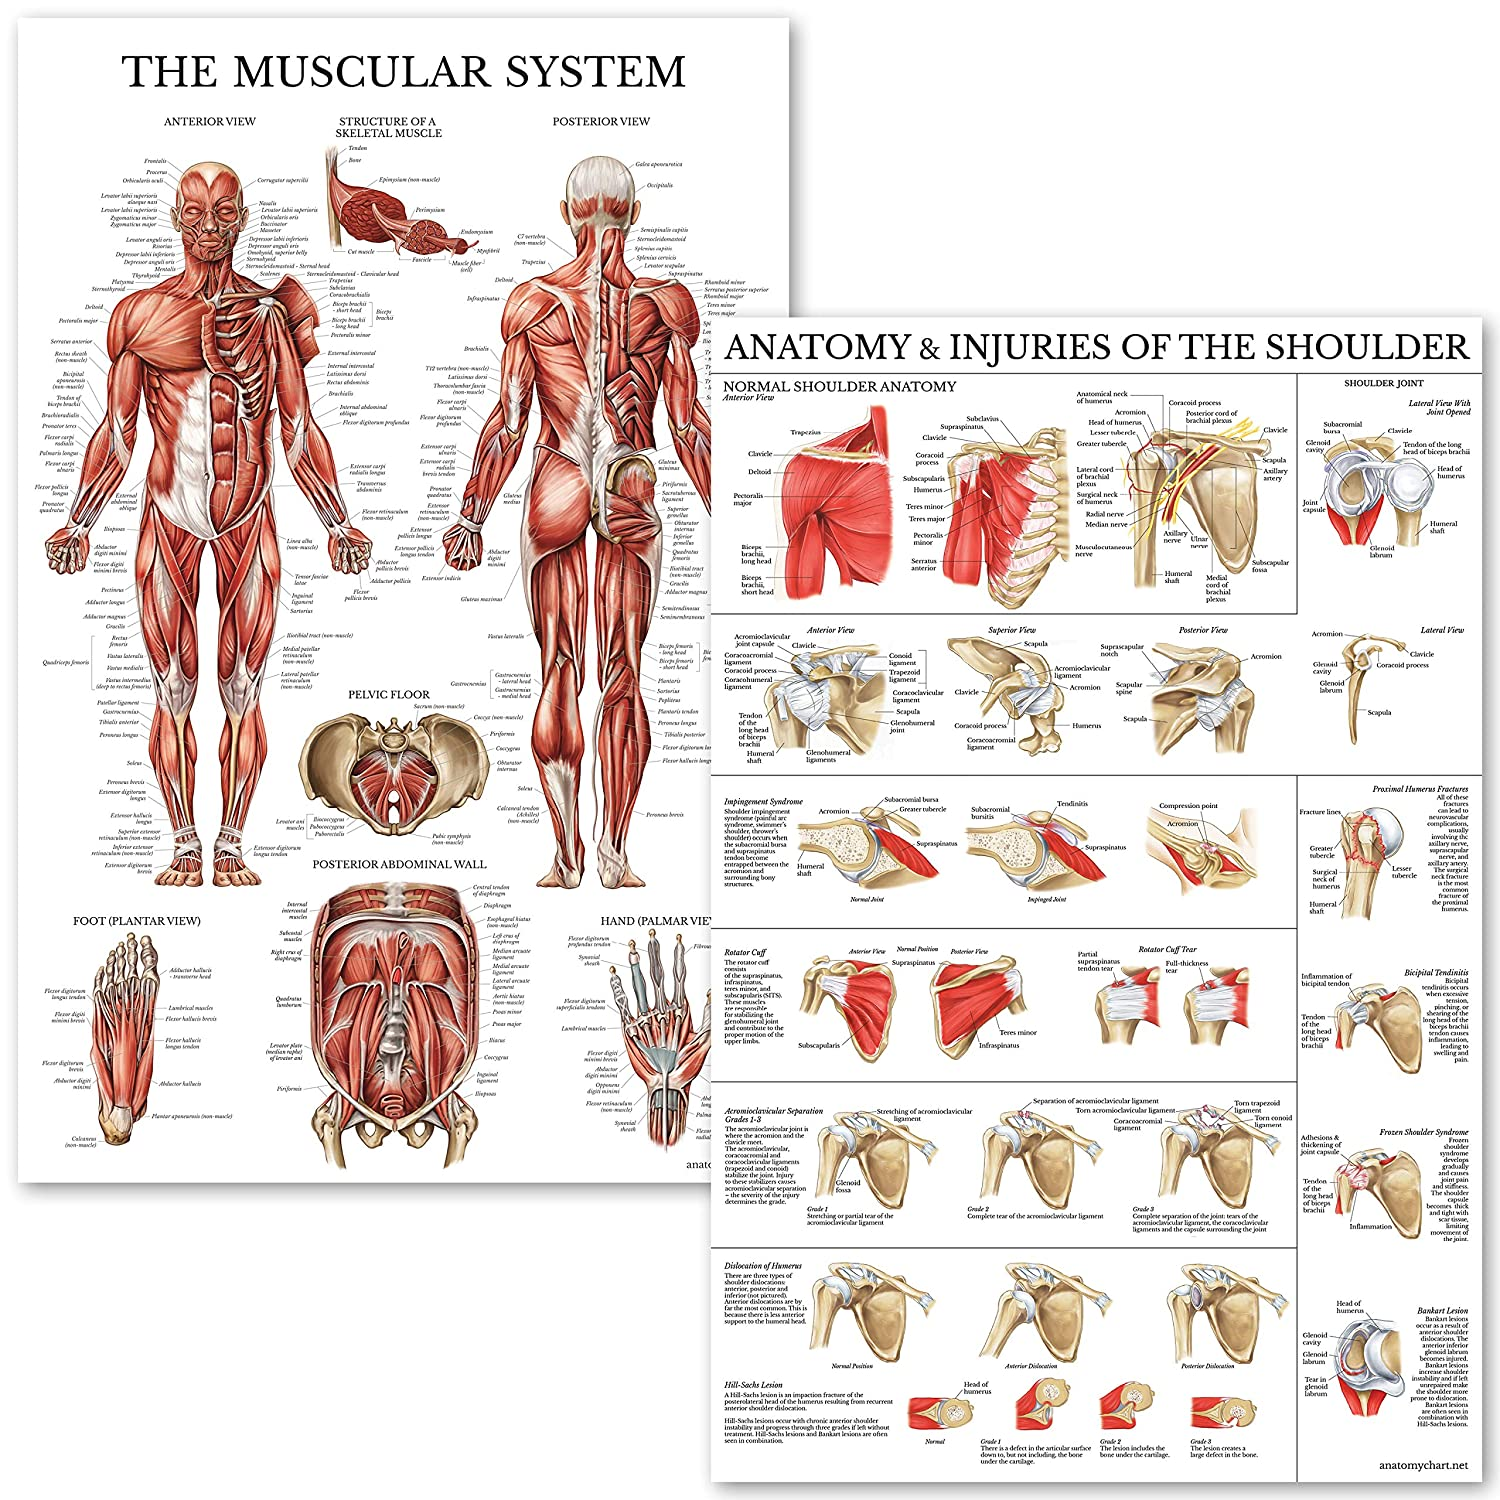 Muscular System & Shoulder Anatomy Poster Set - Laminated Anatomical Muscle and Shoulder Charts - 2 Poster Set Palace Learning